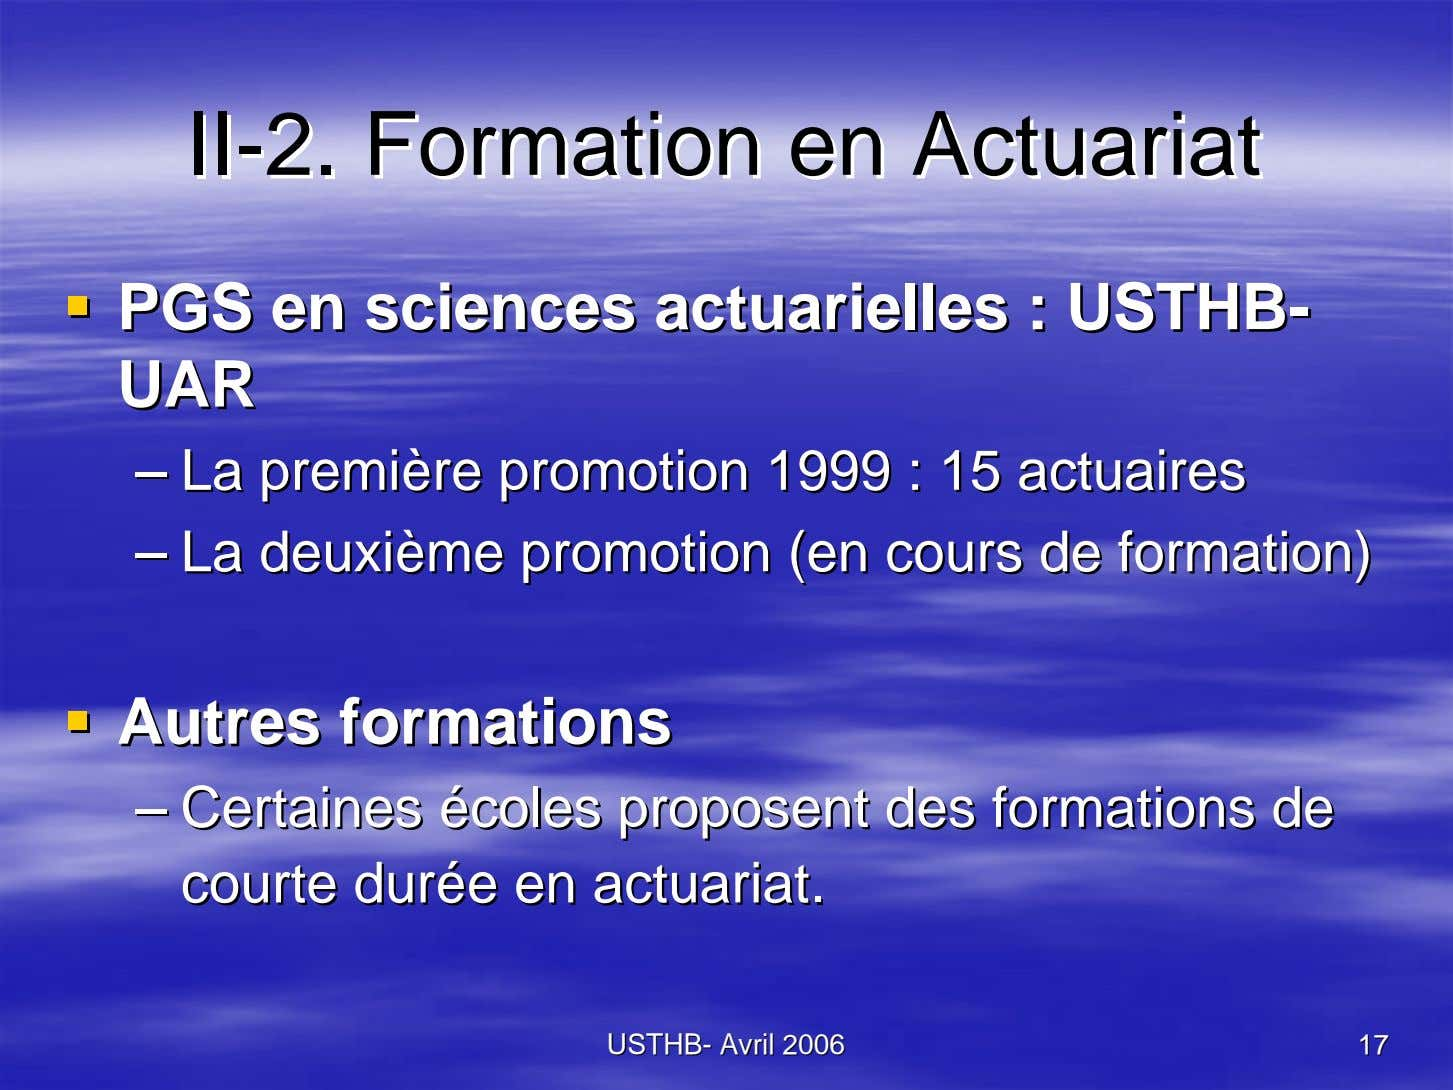 IIII--2.2. FormationFormation enen ActuariatActuariat PGSPGS enen sciencessciences actuariellesactuarielles ::